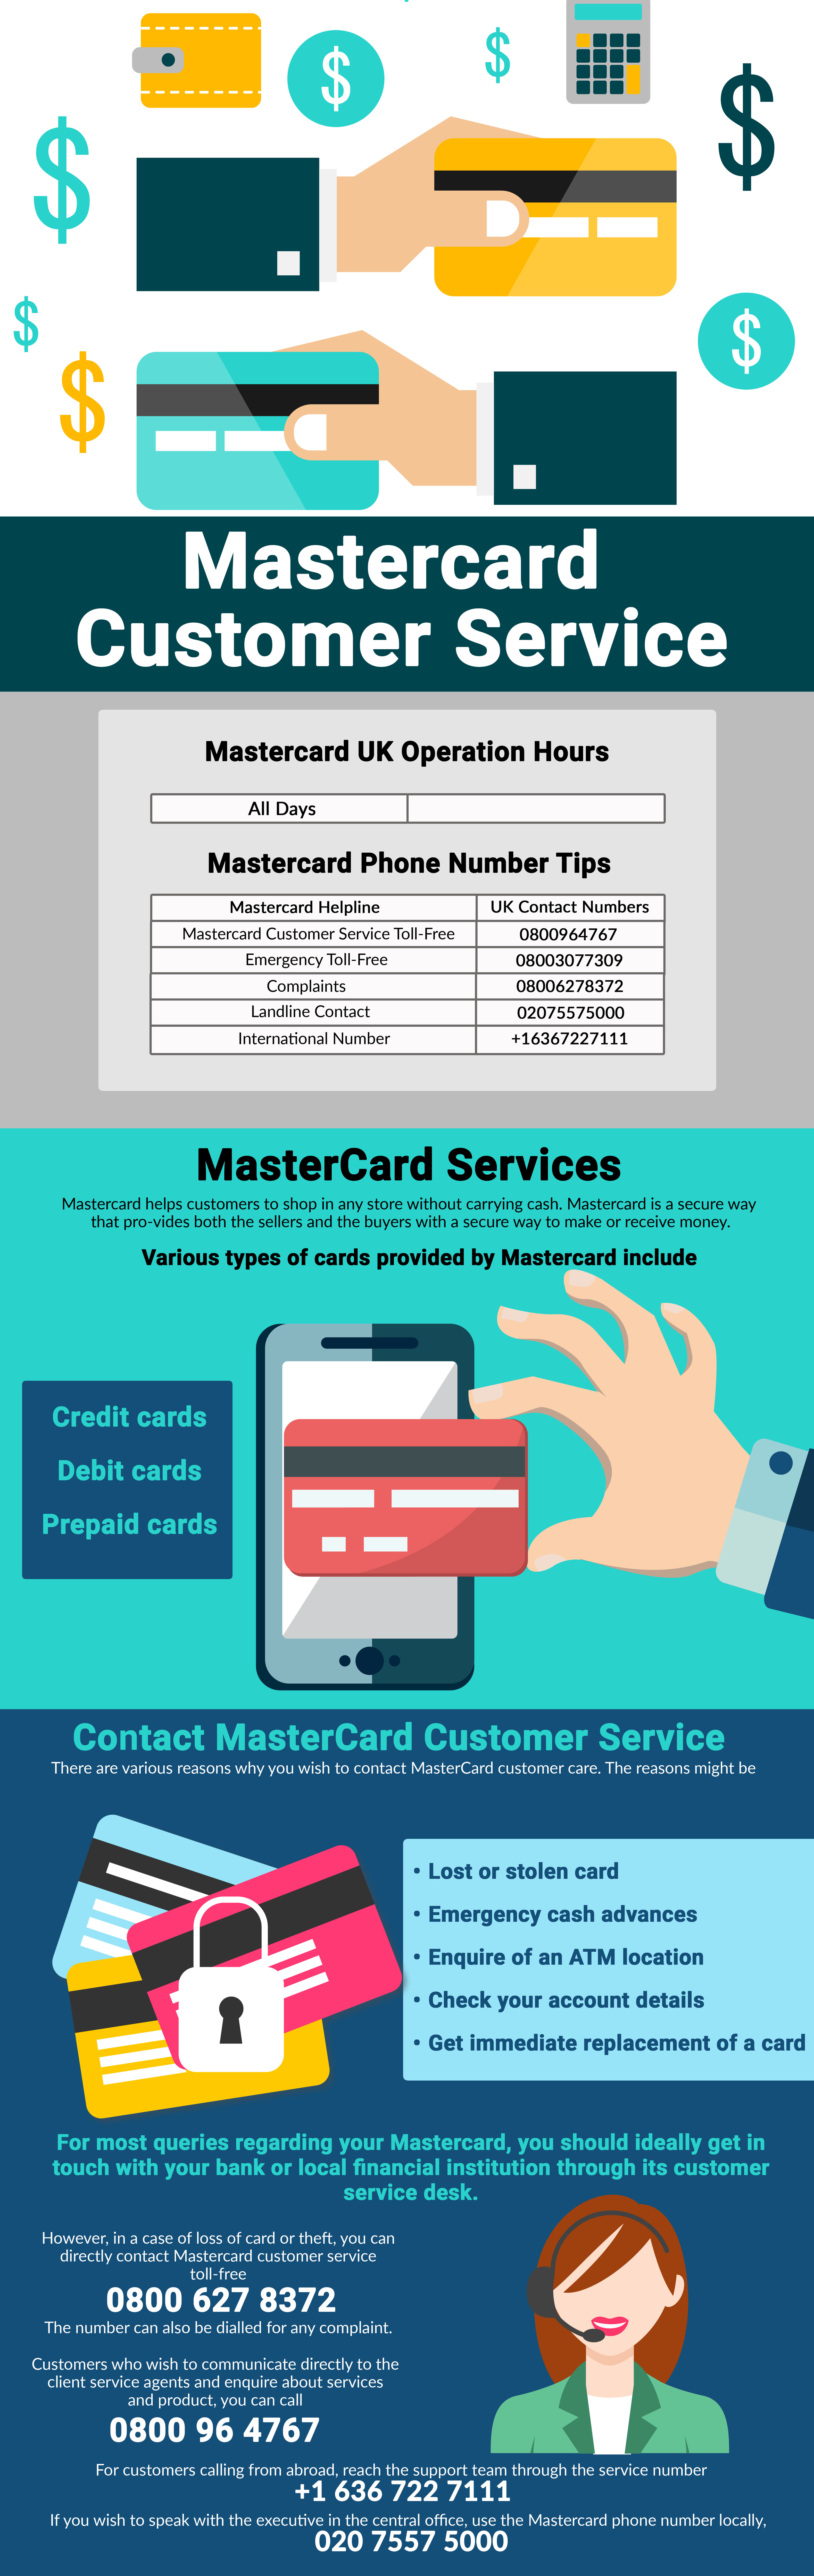 MasterCard Customer Service Contact Number